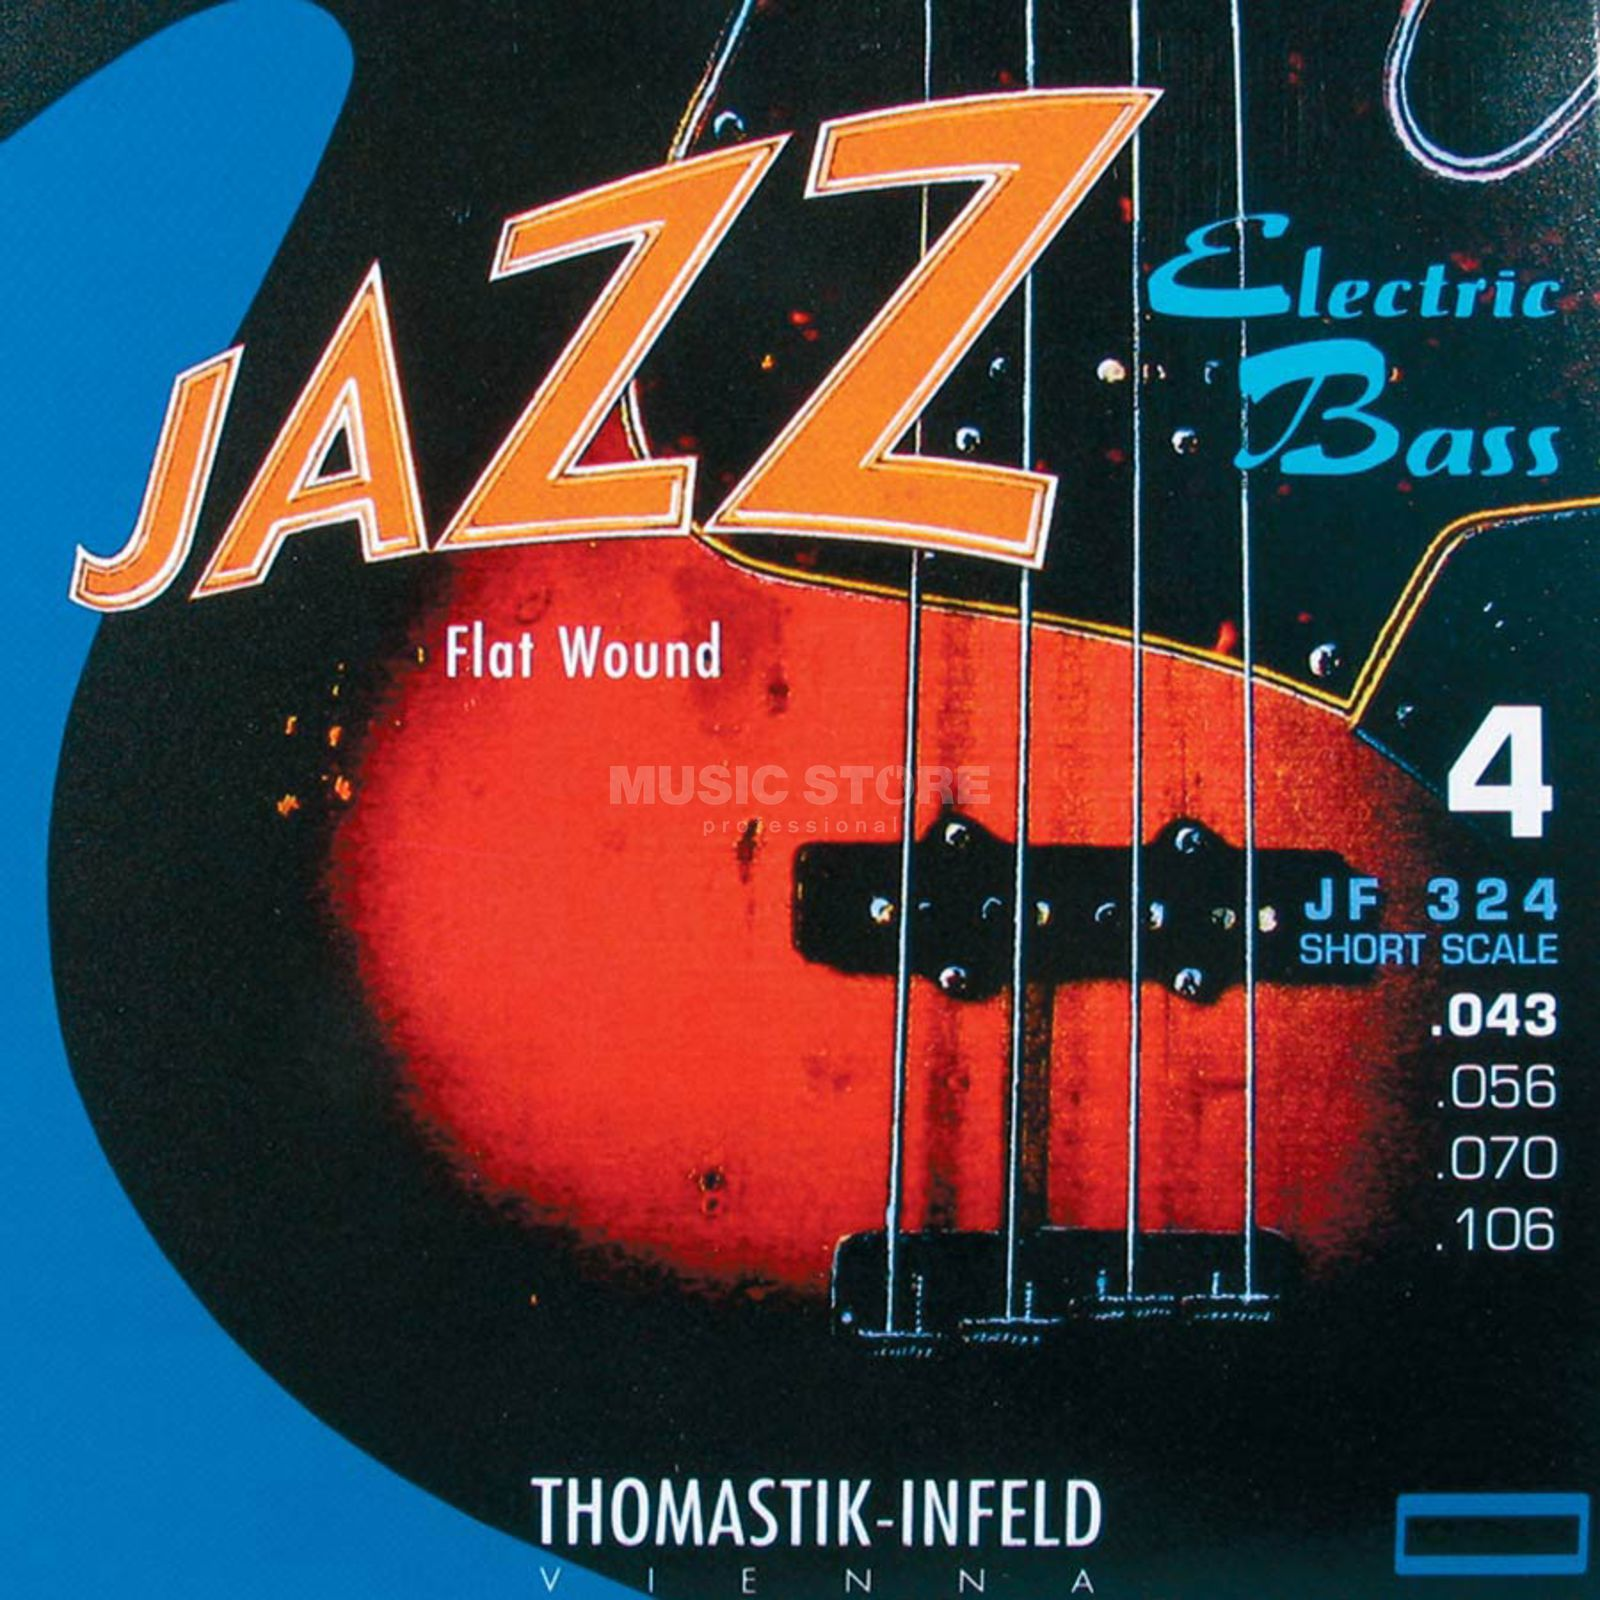 Thomastik 4 Bass Strings JF 324 43-106 Nickel Flat Wound, Short Scale Imagem do produto